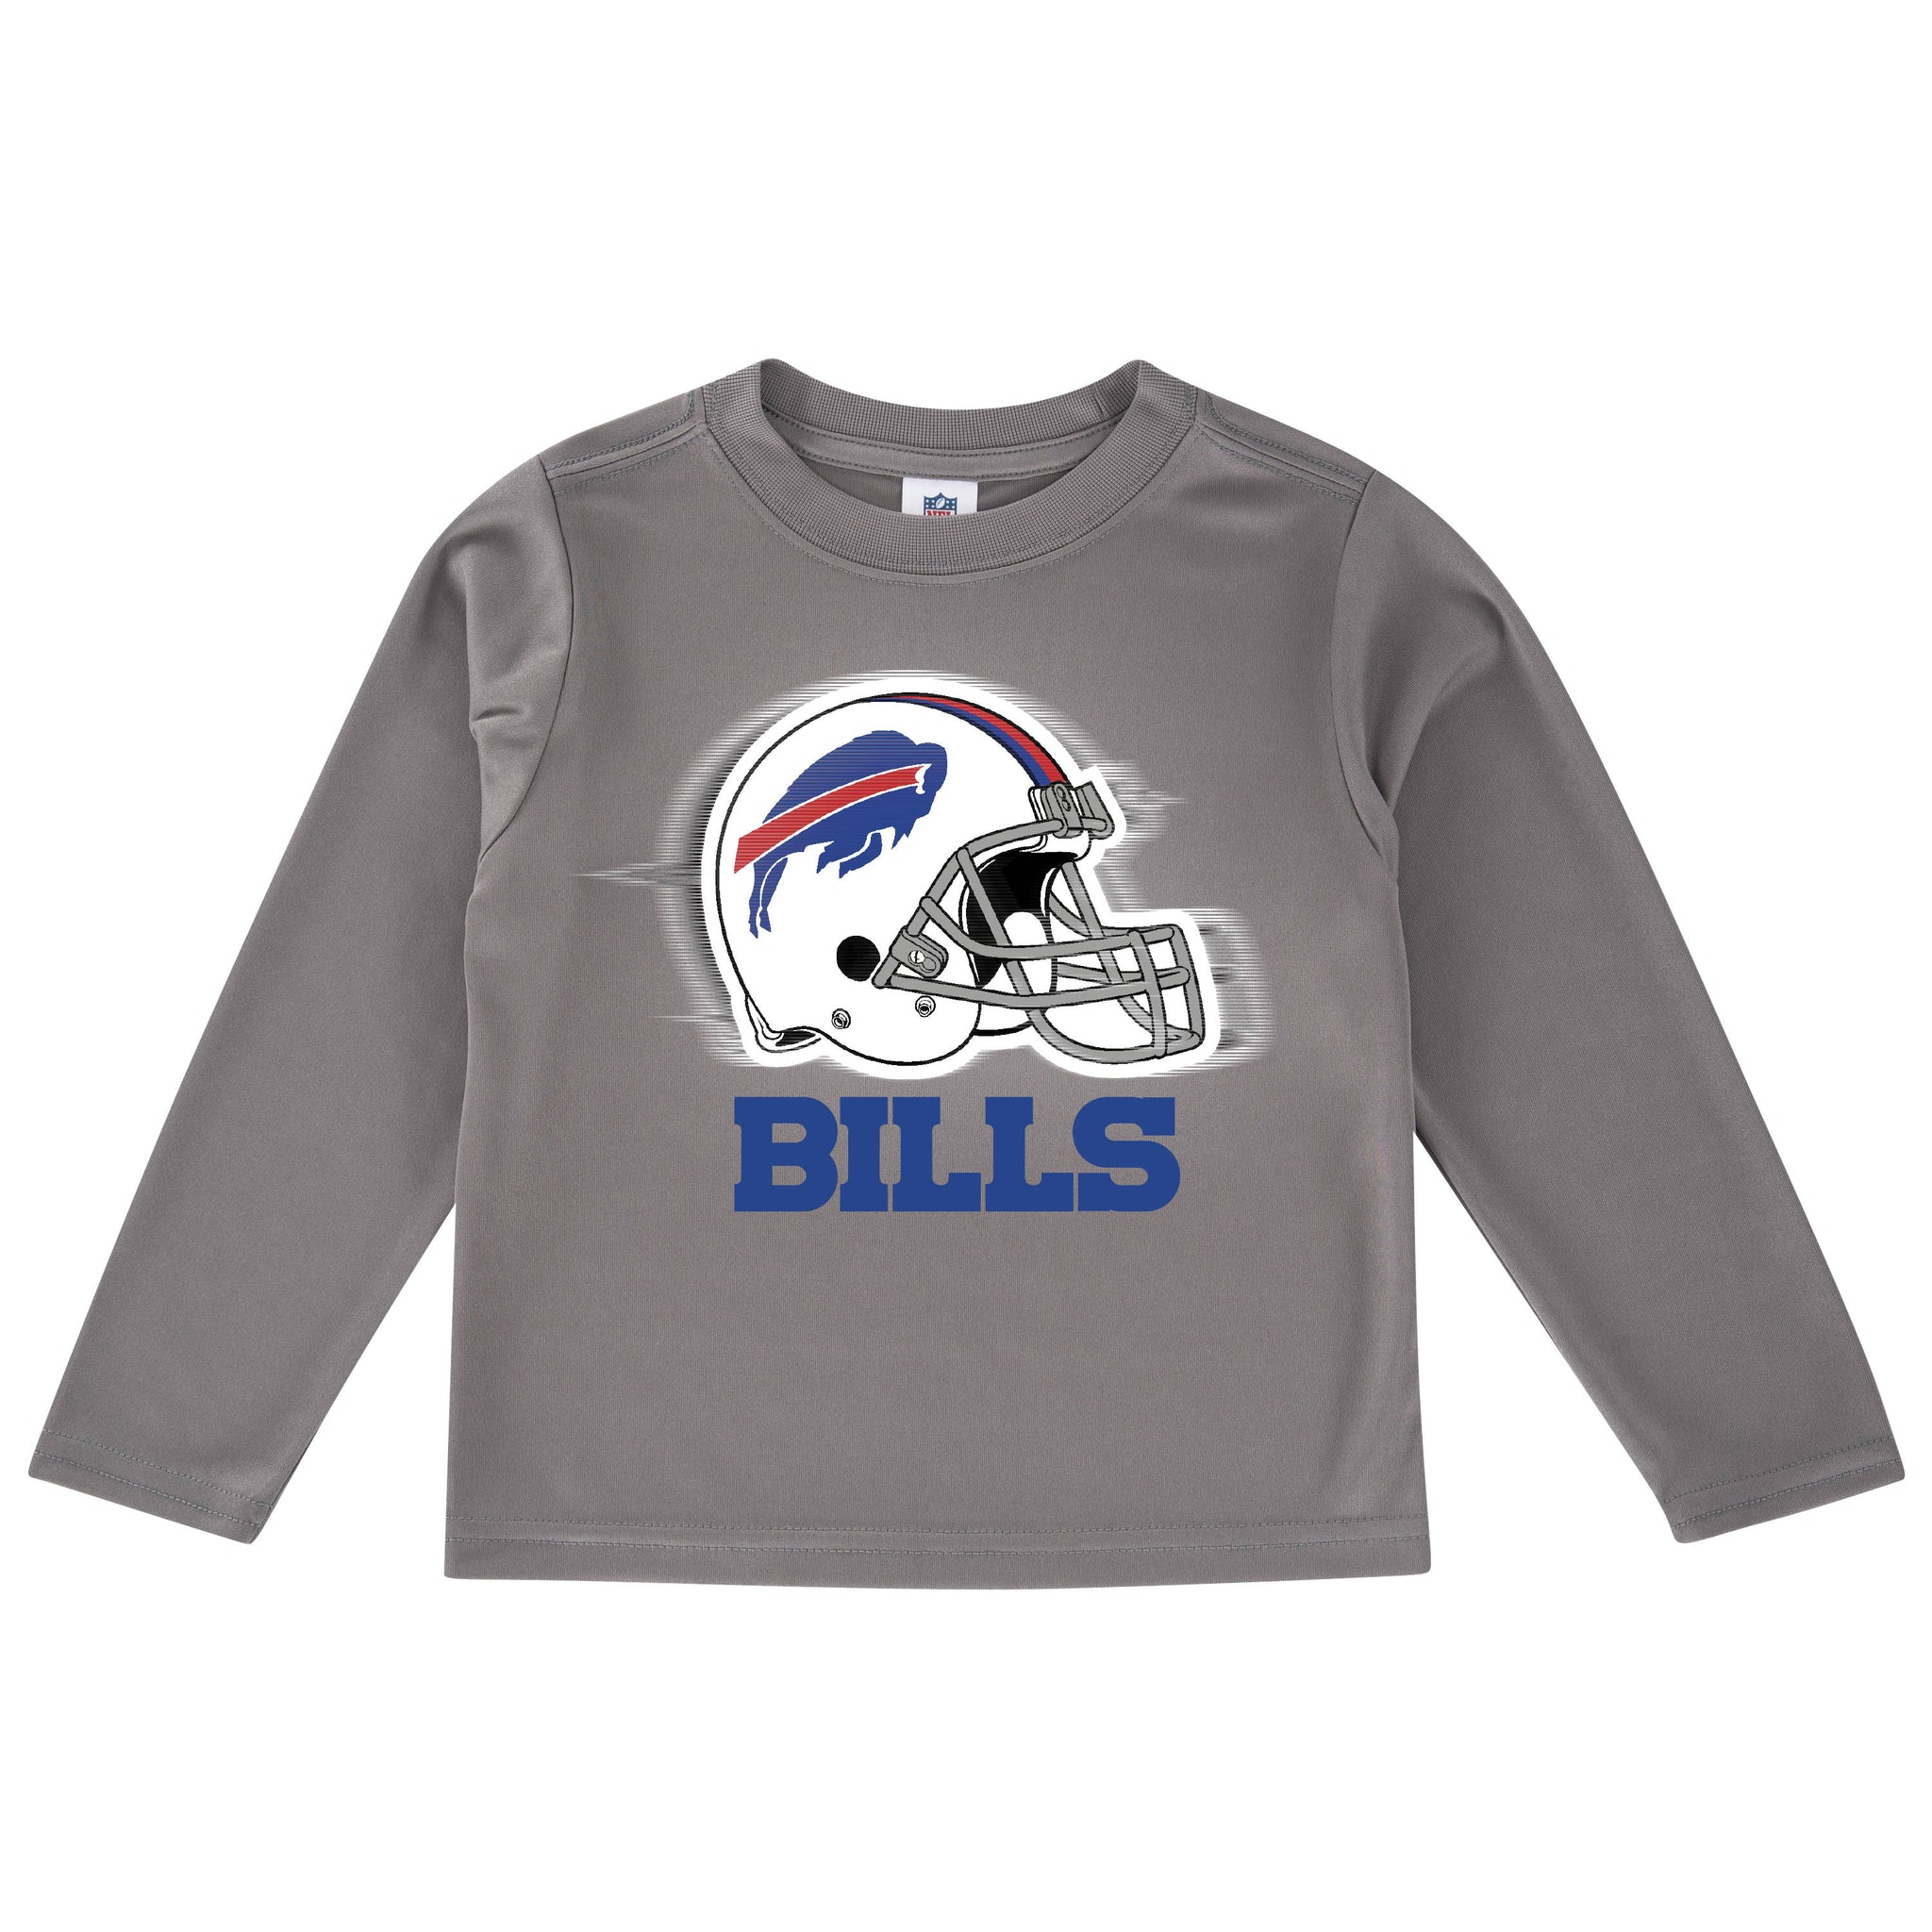 Buffalo Bills Toddler Boys' Long Sleeve Logo Tee-Gerber Childrenswear